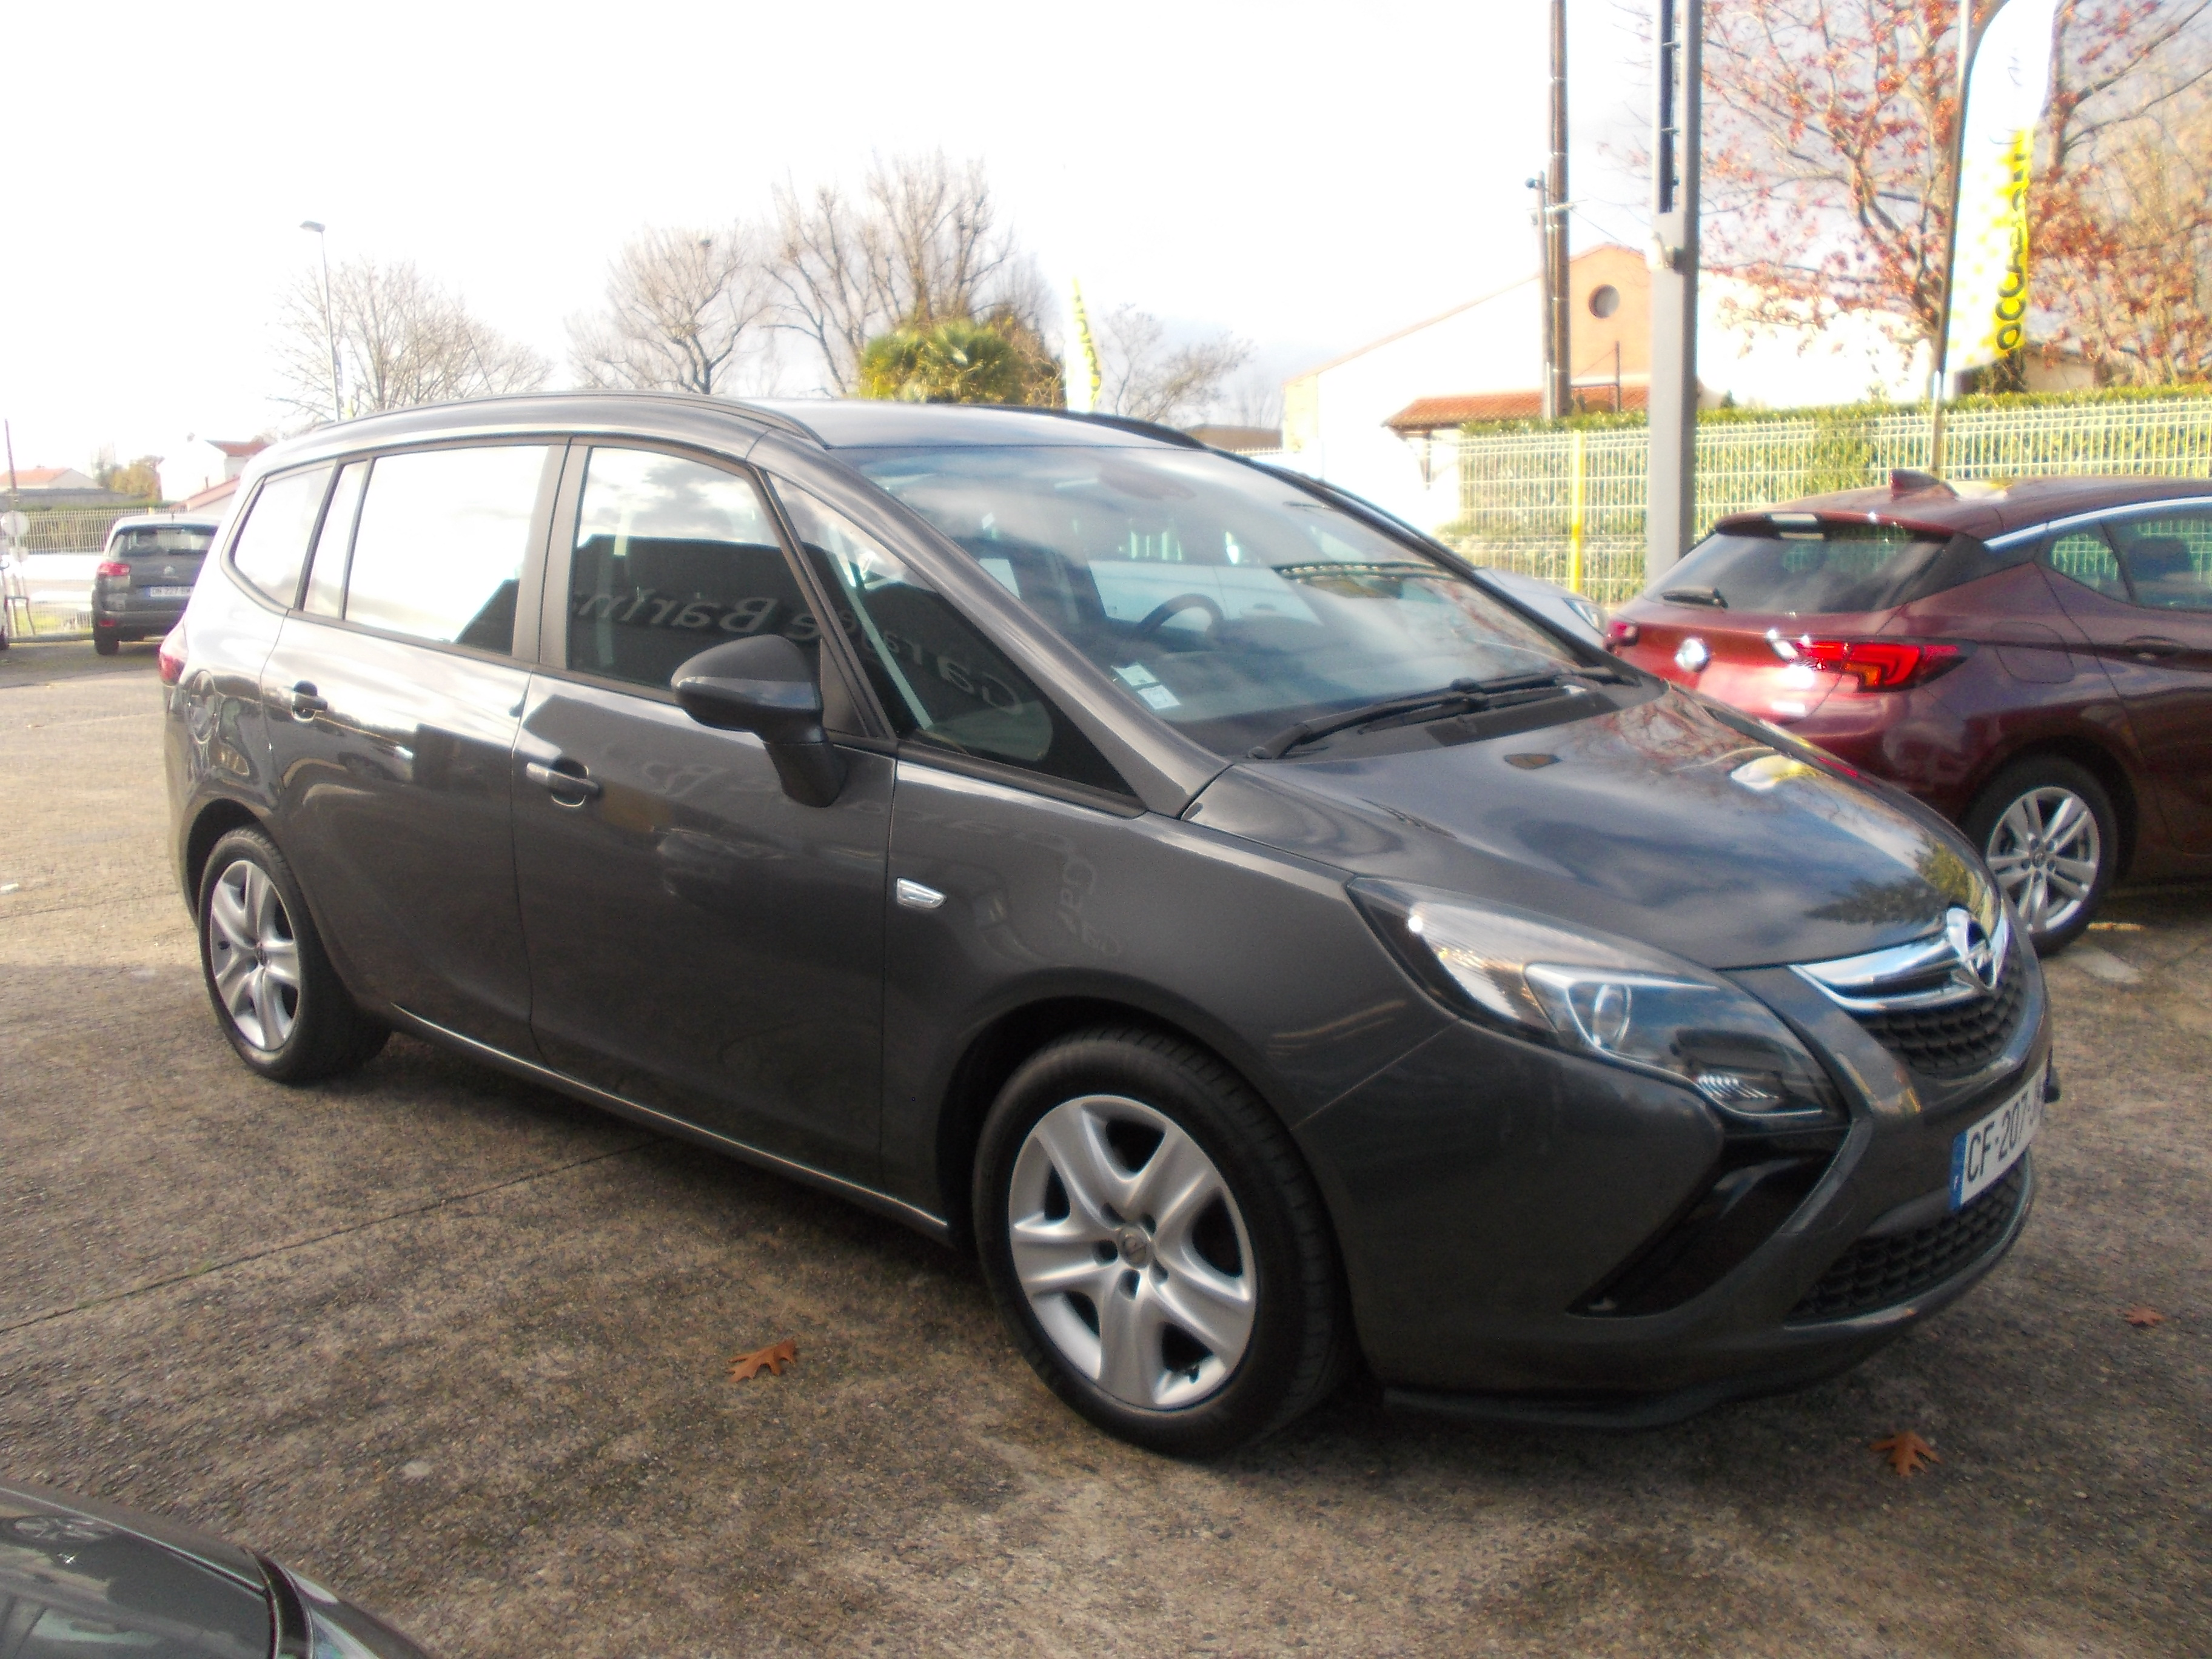 OPEL ZAFIRA TOURER - 2.0 CDTI 130 ch Start/Stop ecoFLEX Enjoy